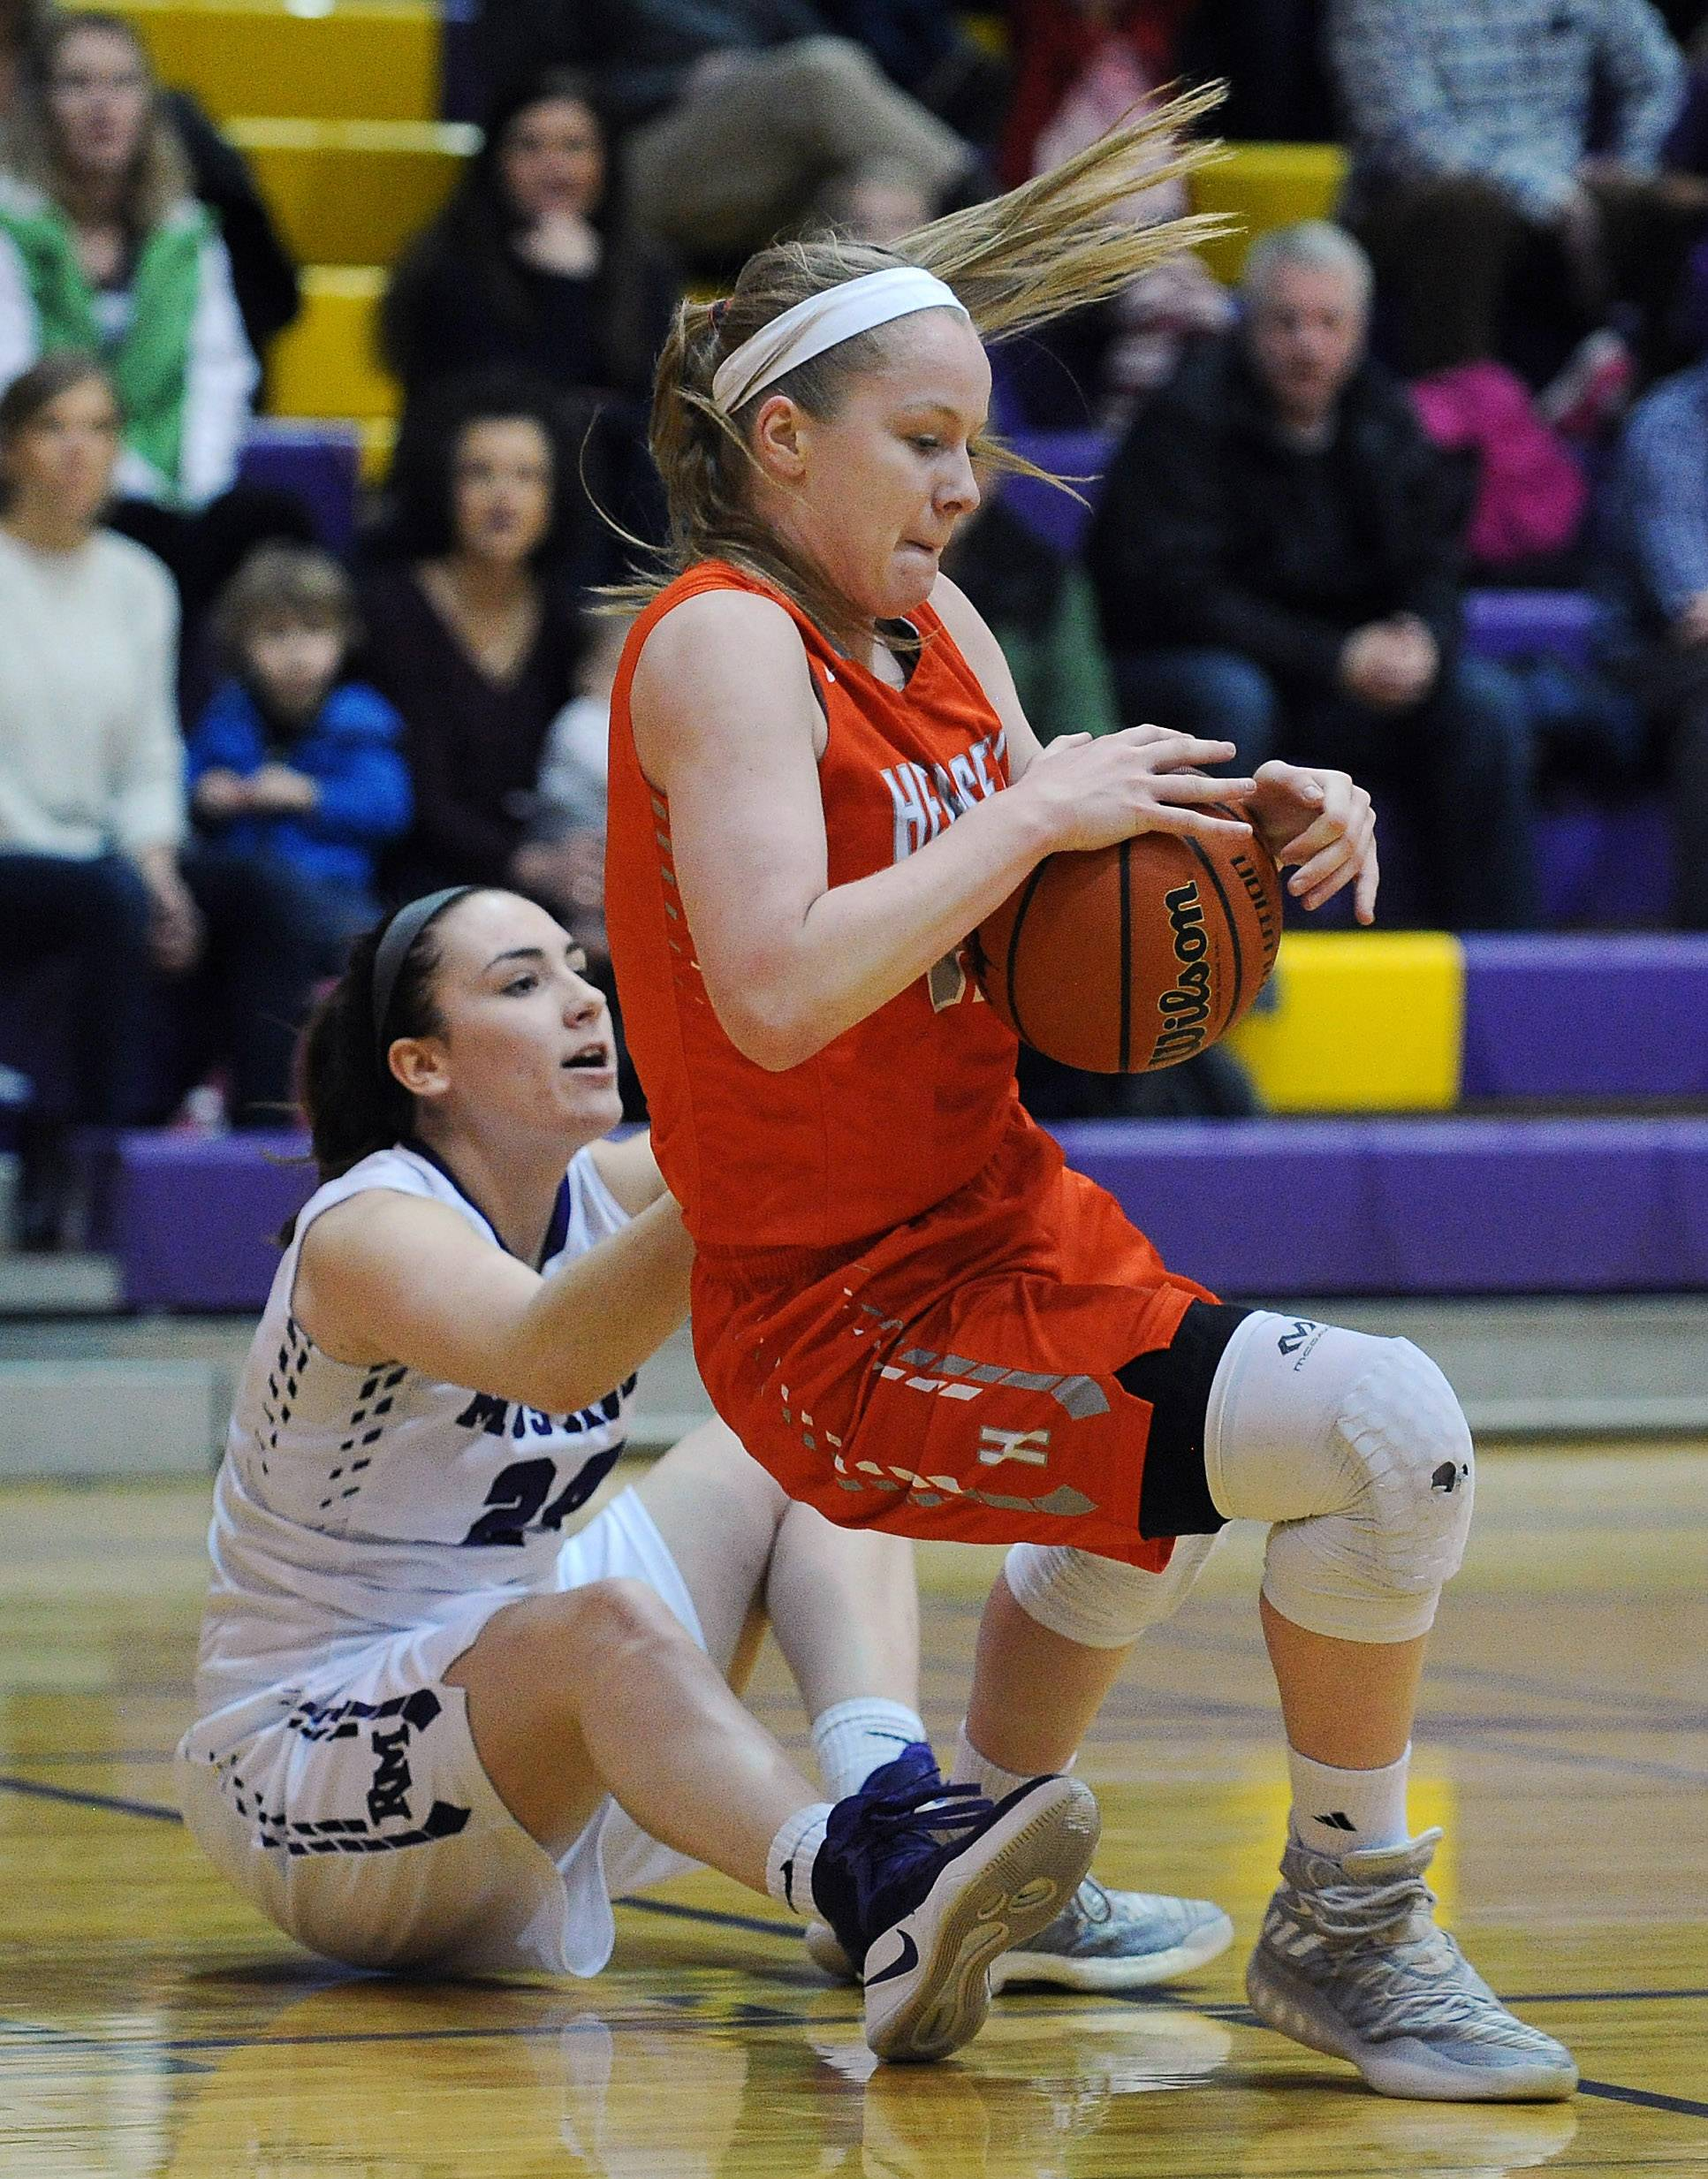 Hersey's Claire Gritt and Meadow's Caili Hosler battle for the ball on Friday at Rolling Meadows. The Huskies won 60-44 to clinch an outright MSL East championship.